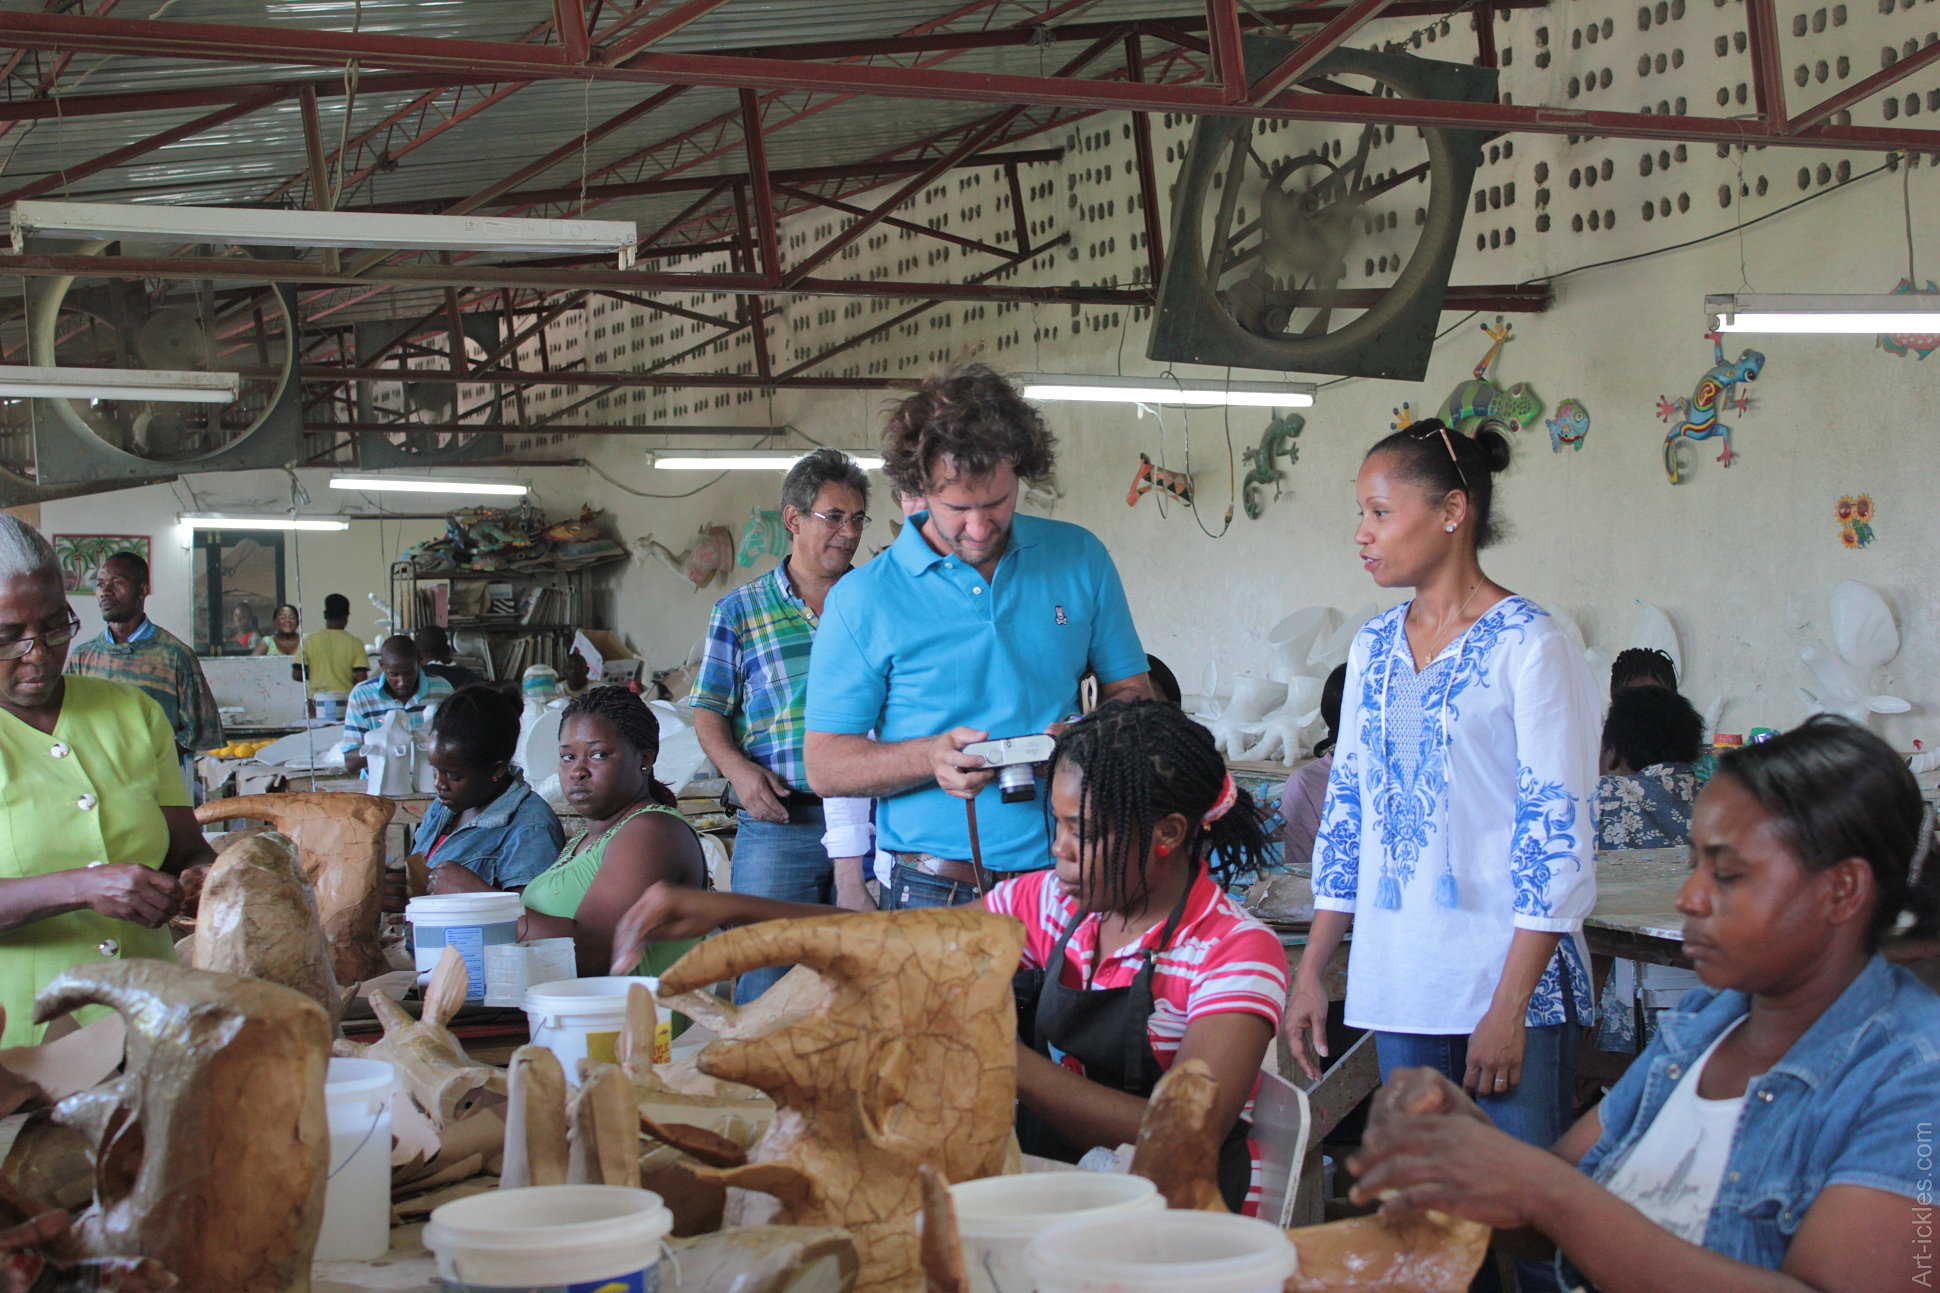 Blake, founder of TOMS Shoes, taking pictures of artisans handcrafting a faux taxidermy rhino head in paper mache.